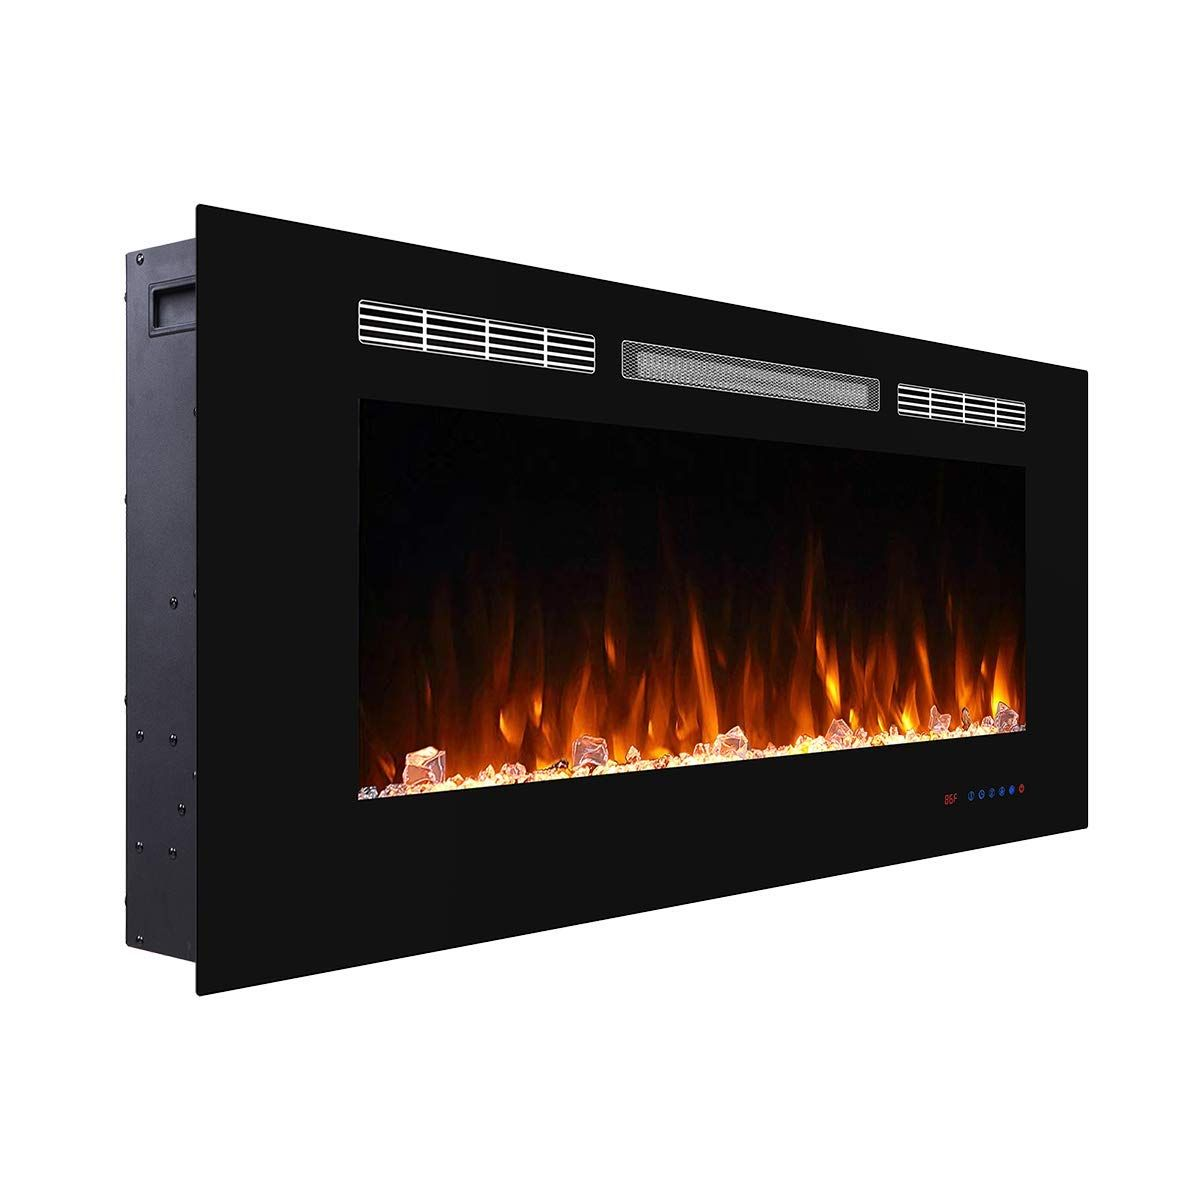 Best buy electric fireplace